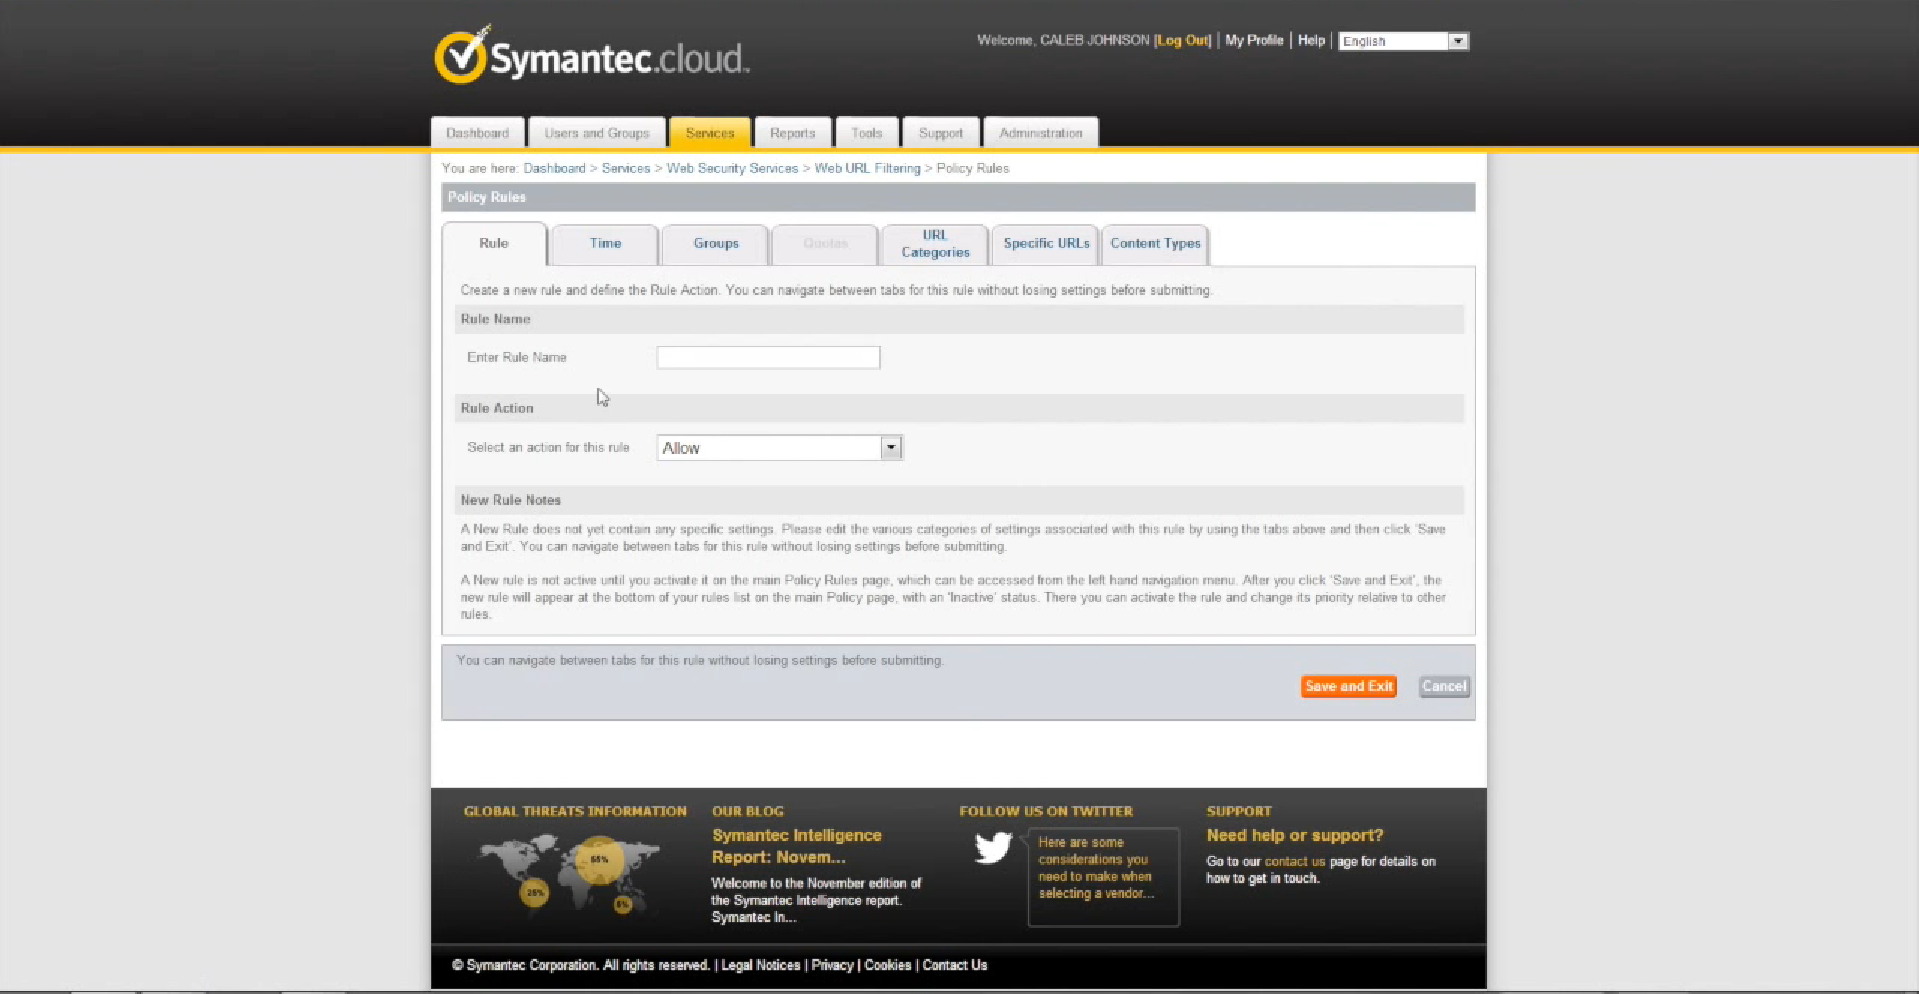 Symantec Cloud Policy Rules